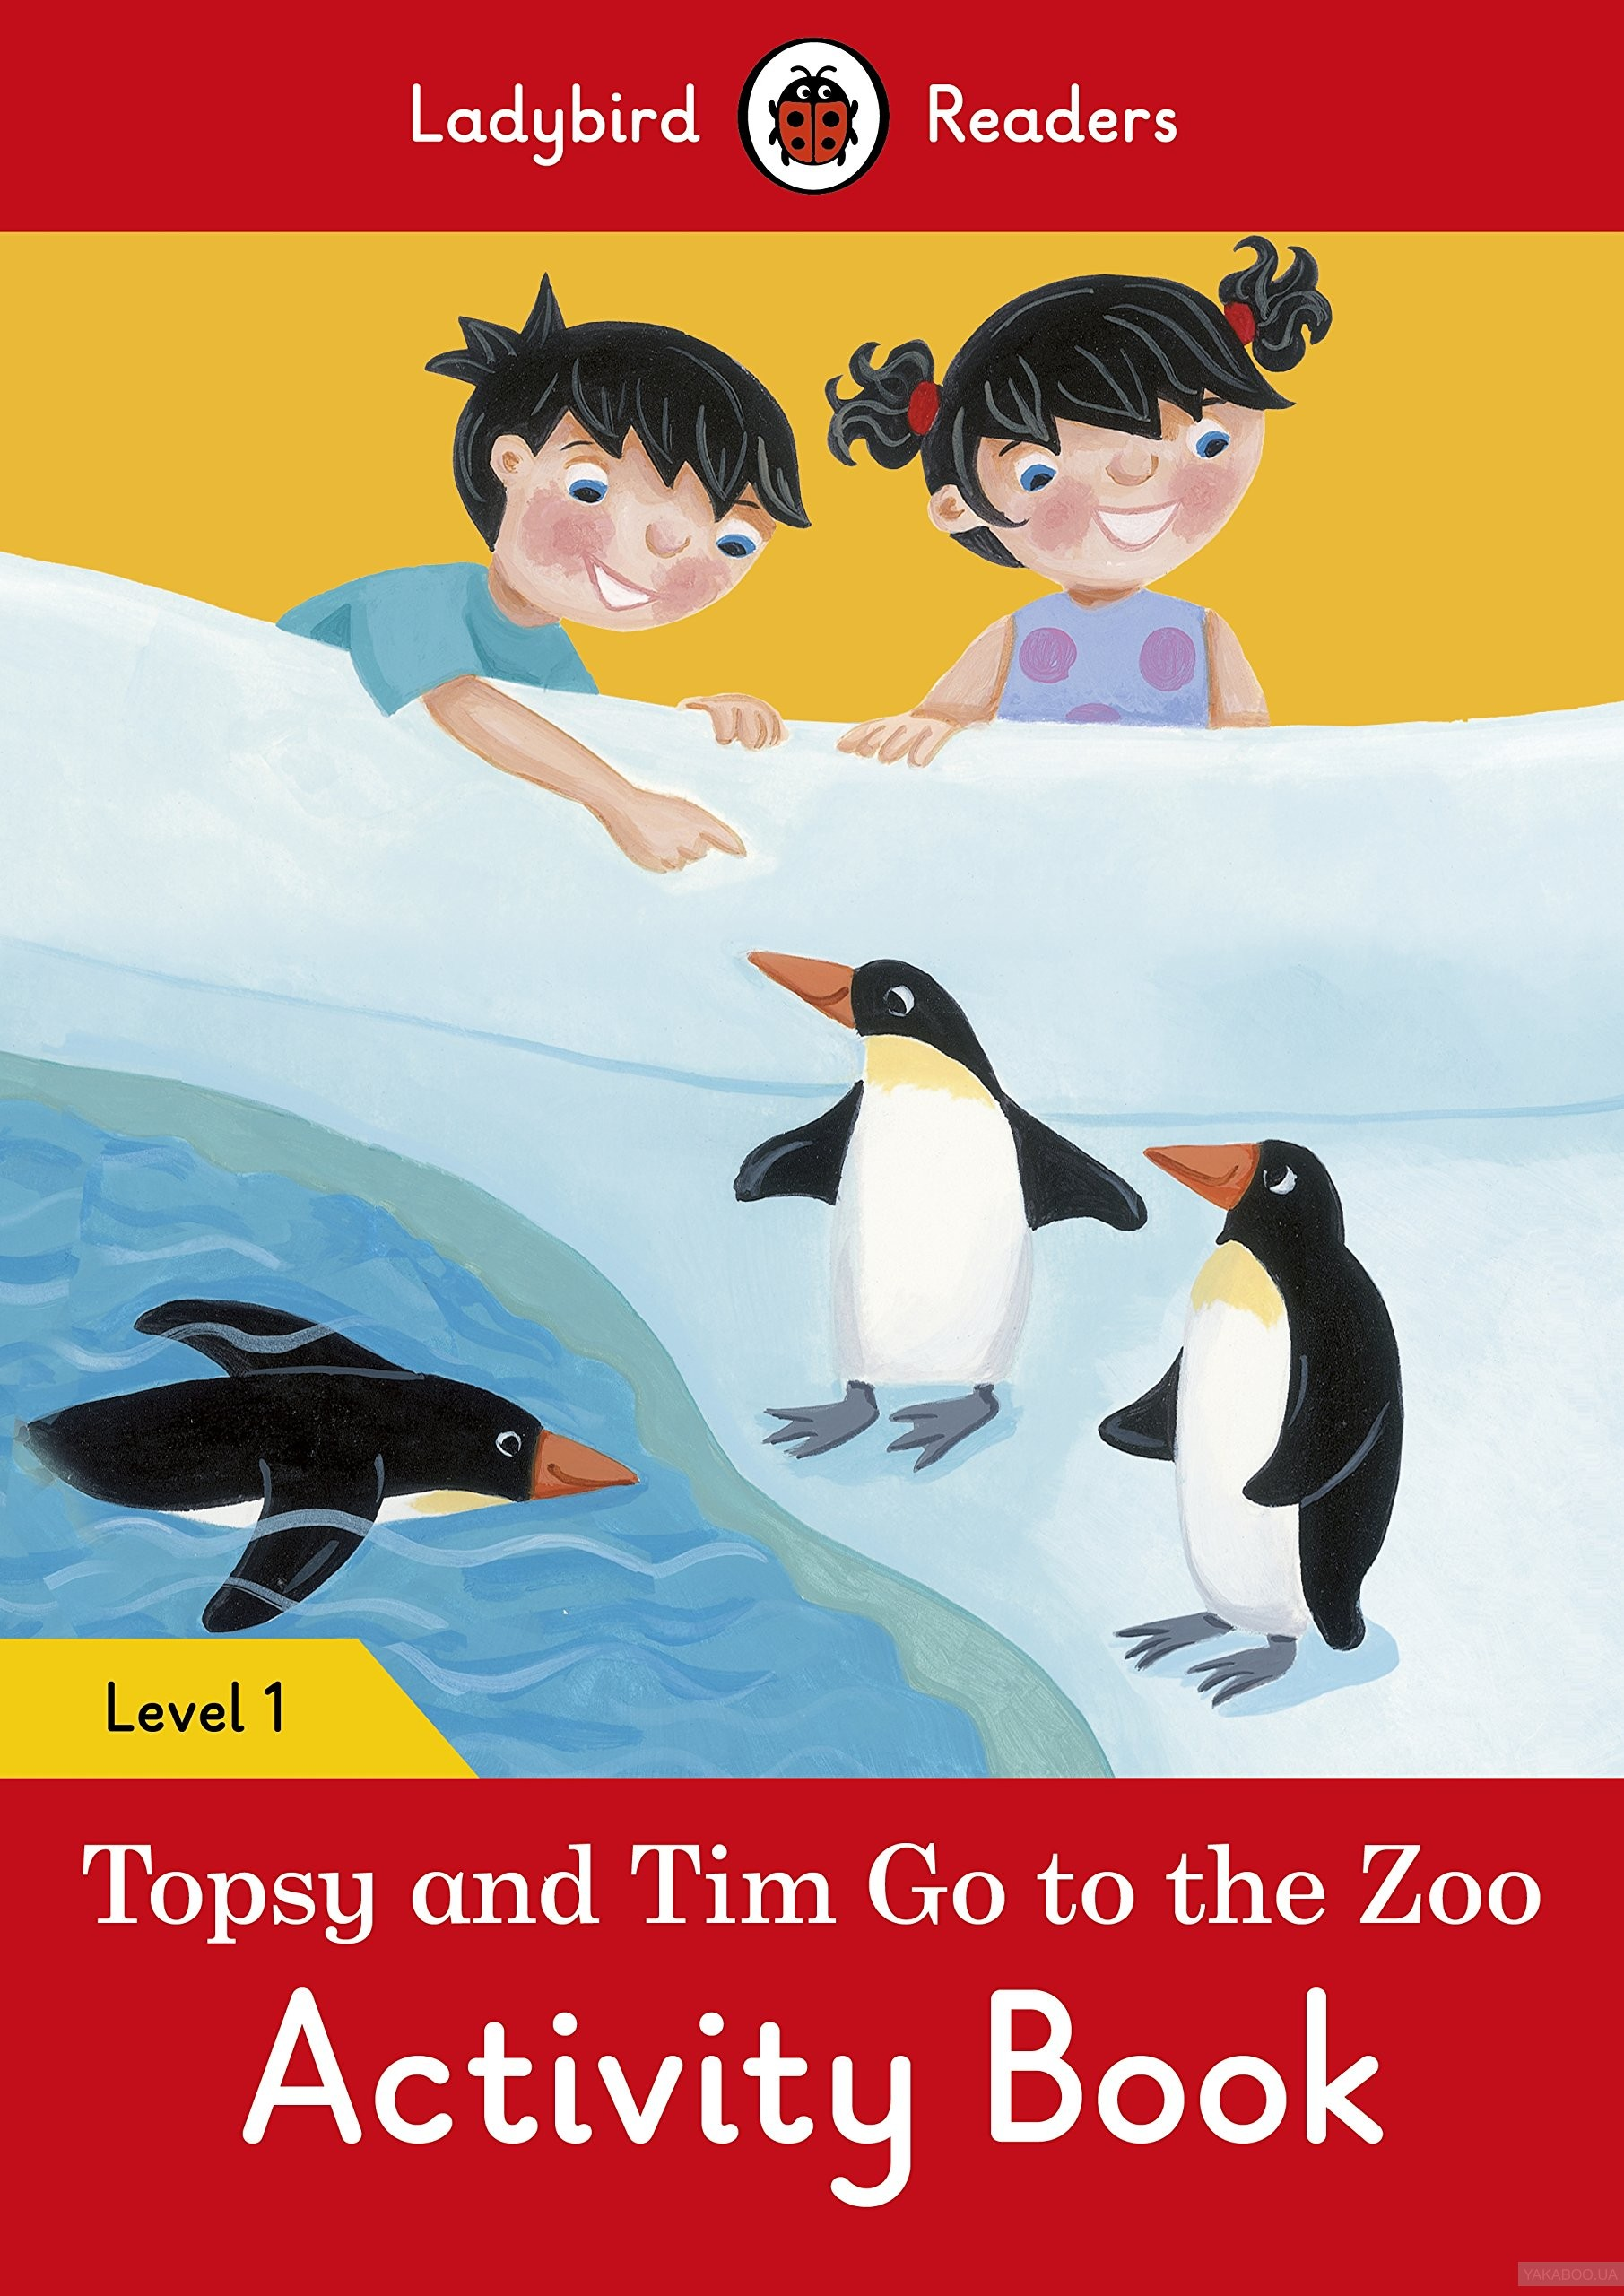 Ladybird Readers. Level 1. Topsy and Tim: Go to the Zoo. Activity Book